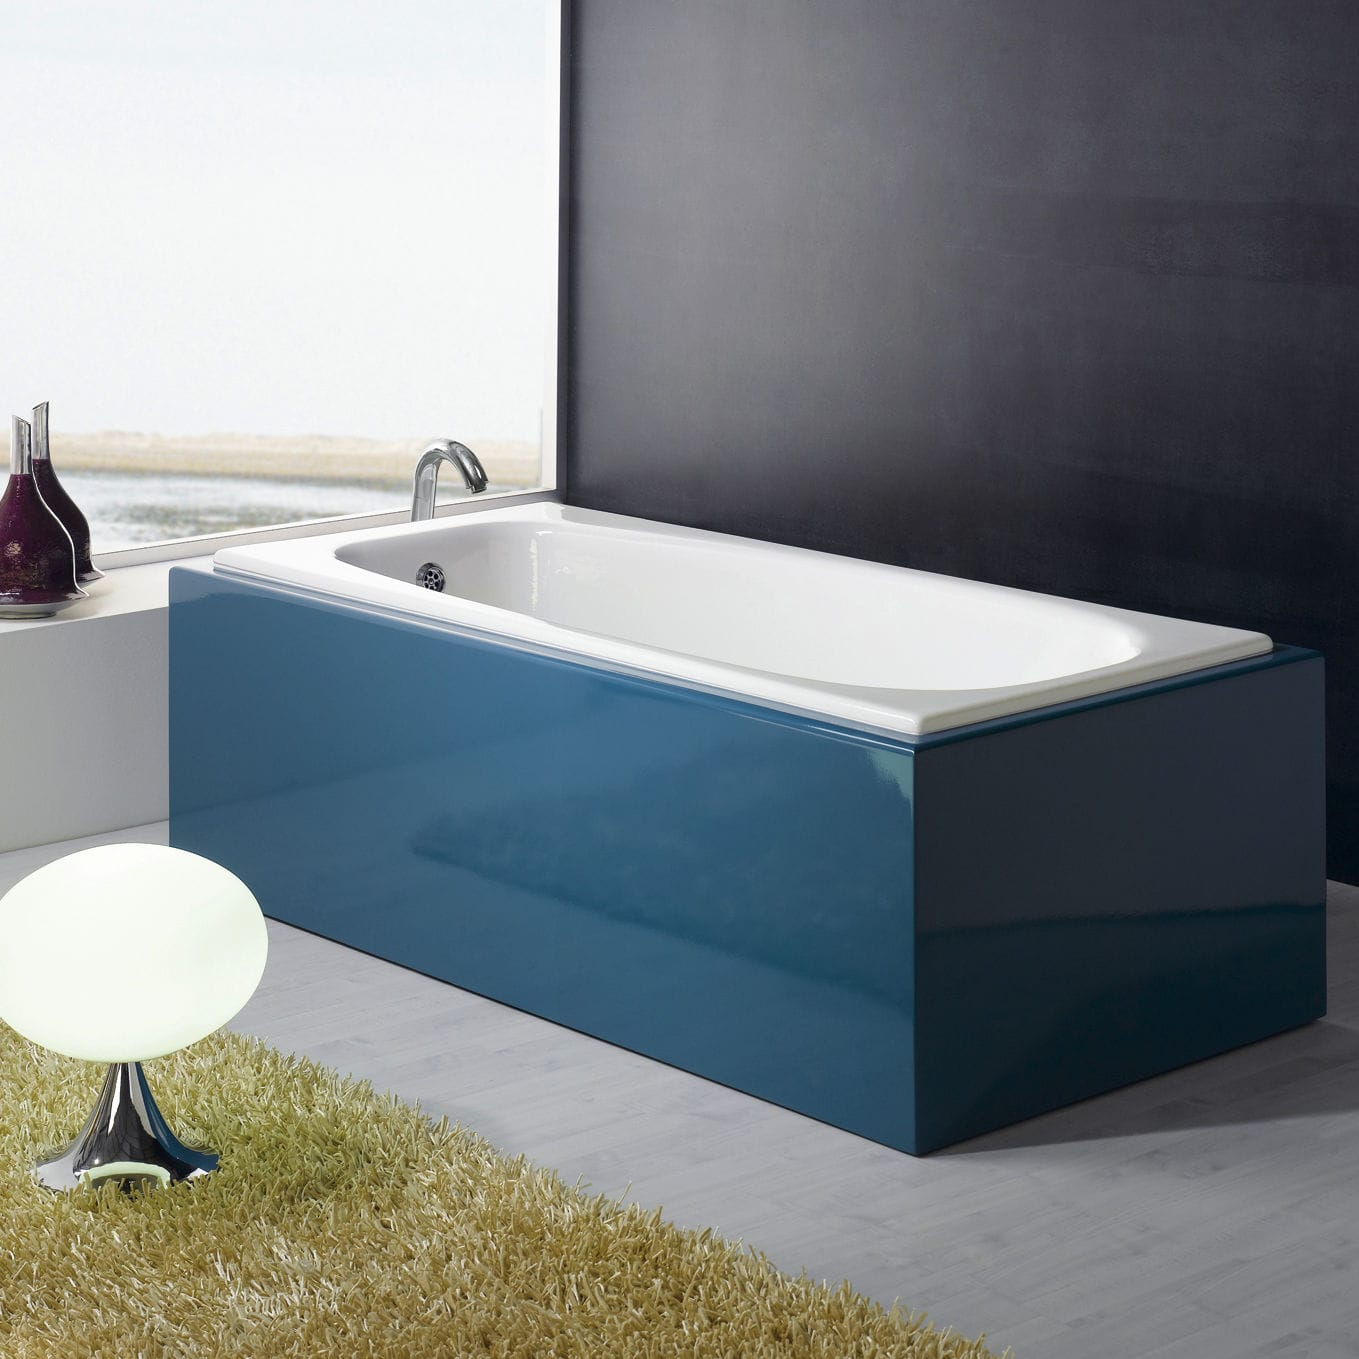 Picture of: Cast Iron Bathtub Siesta Recor Commercial